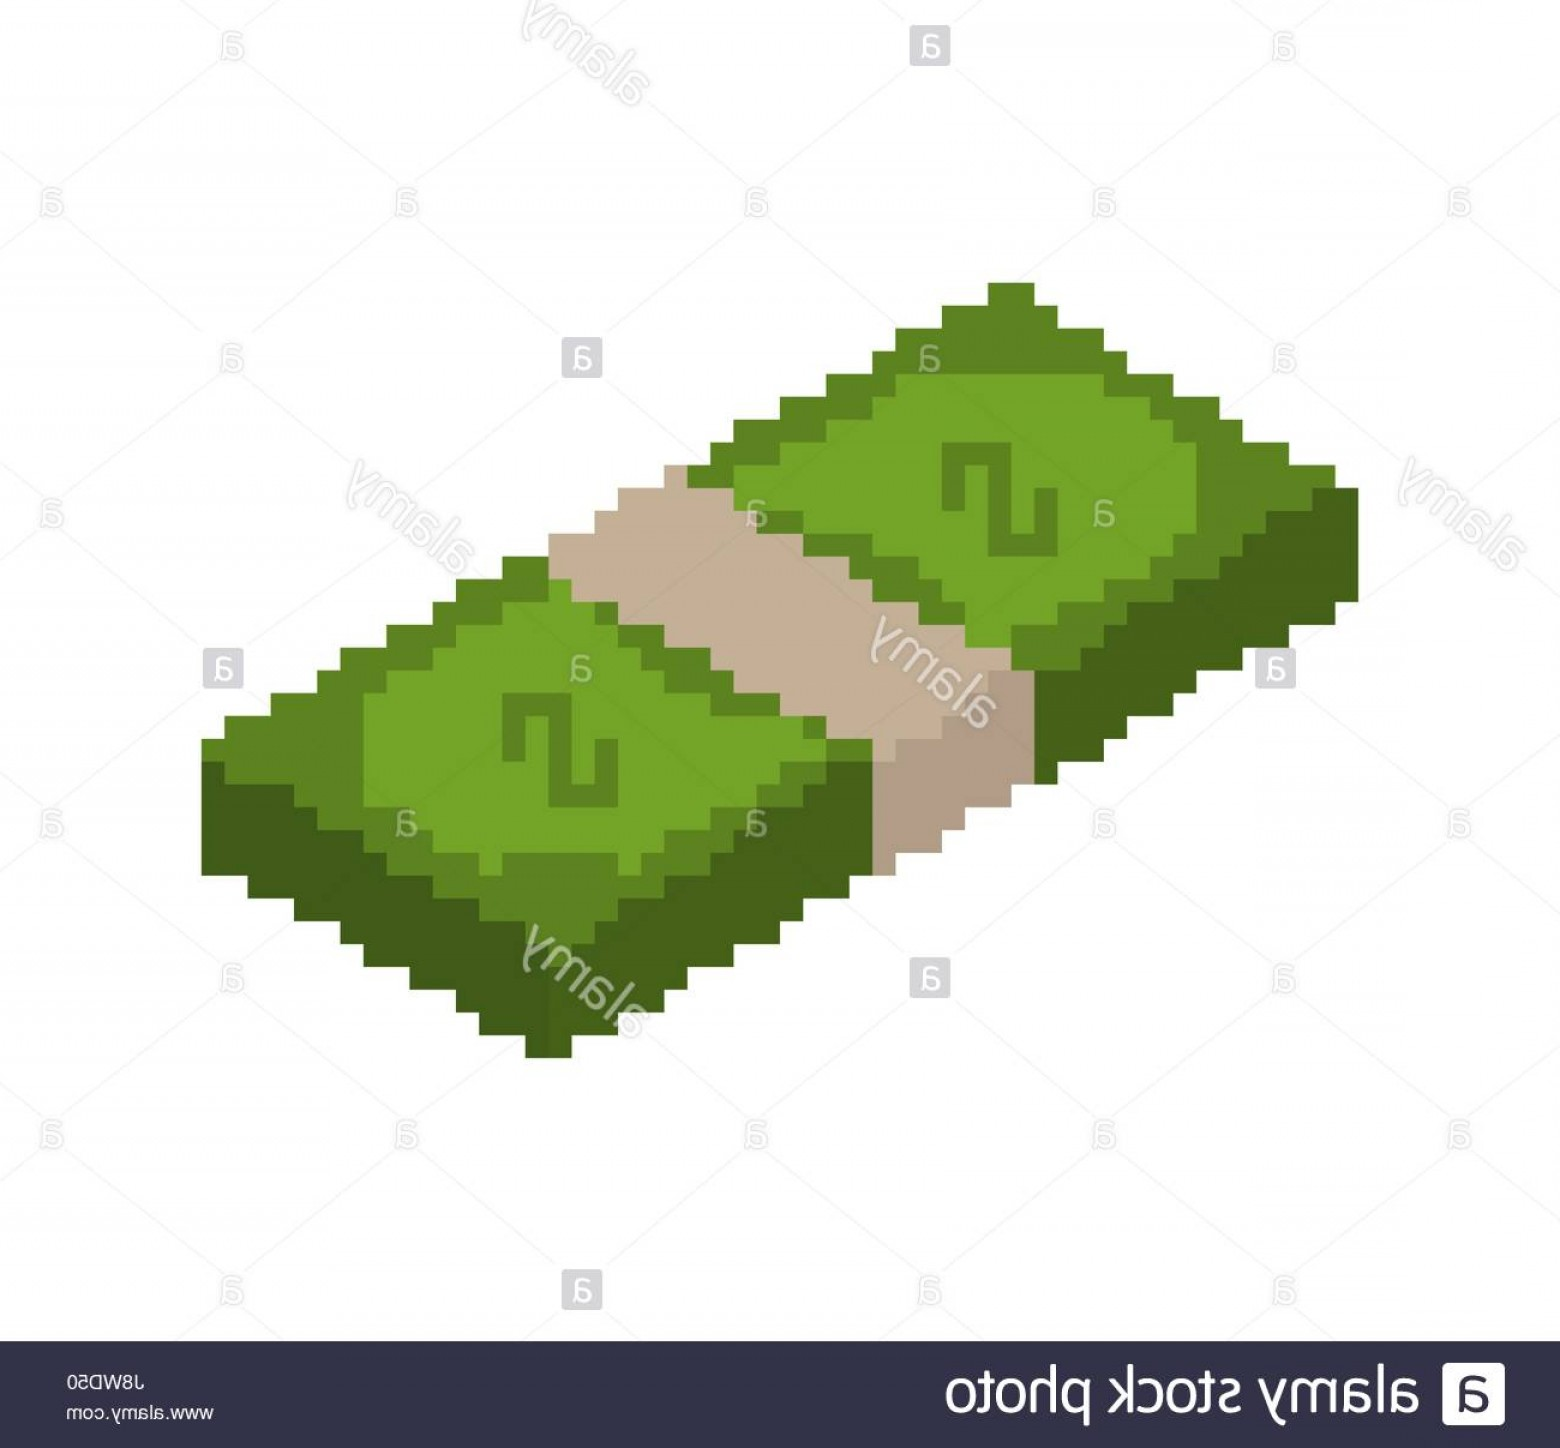 Hundreds Of Money Stacks Vector: Stock Photo Stack Of Money Pixel Art Pile Of Cash Pixelated Dollars Isolated